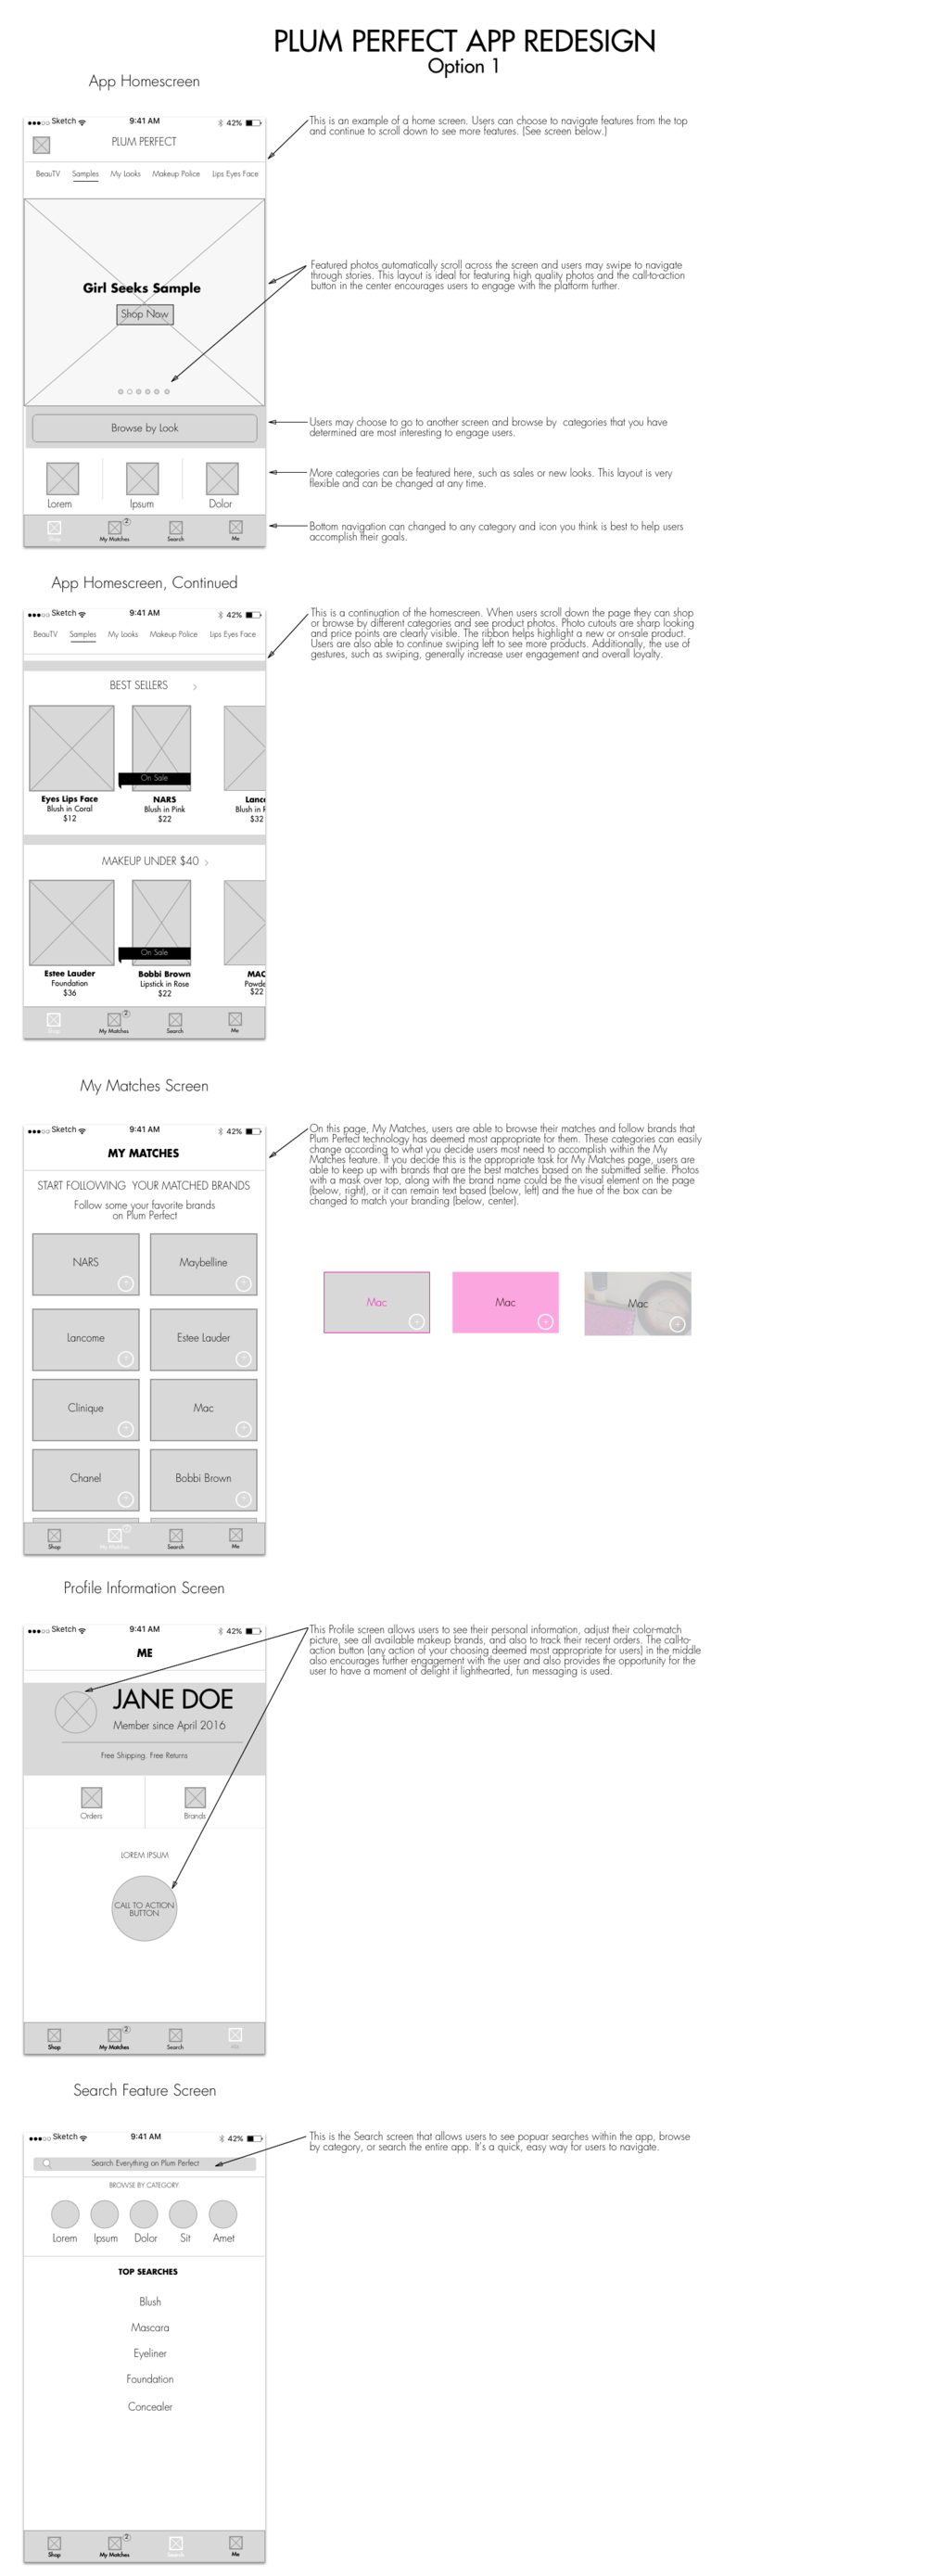 Plum Perfect App Redesign option 1 PNG.png